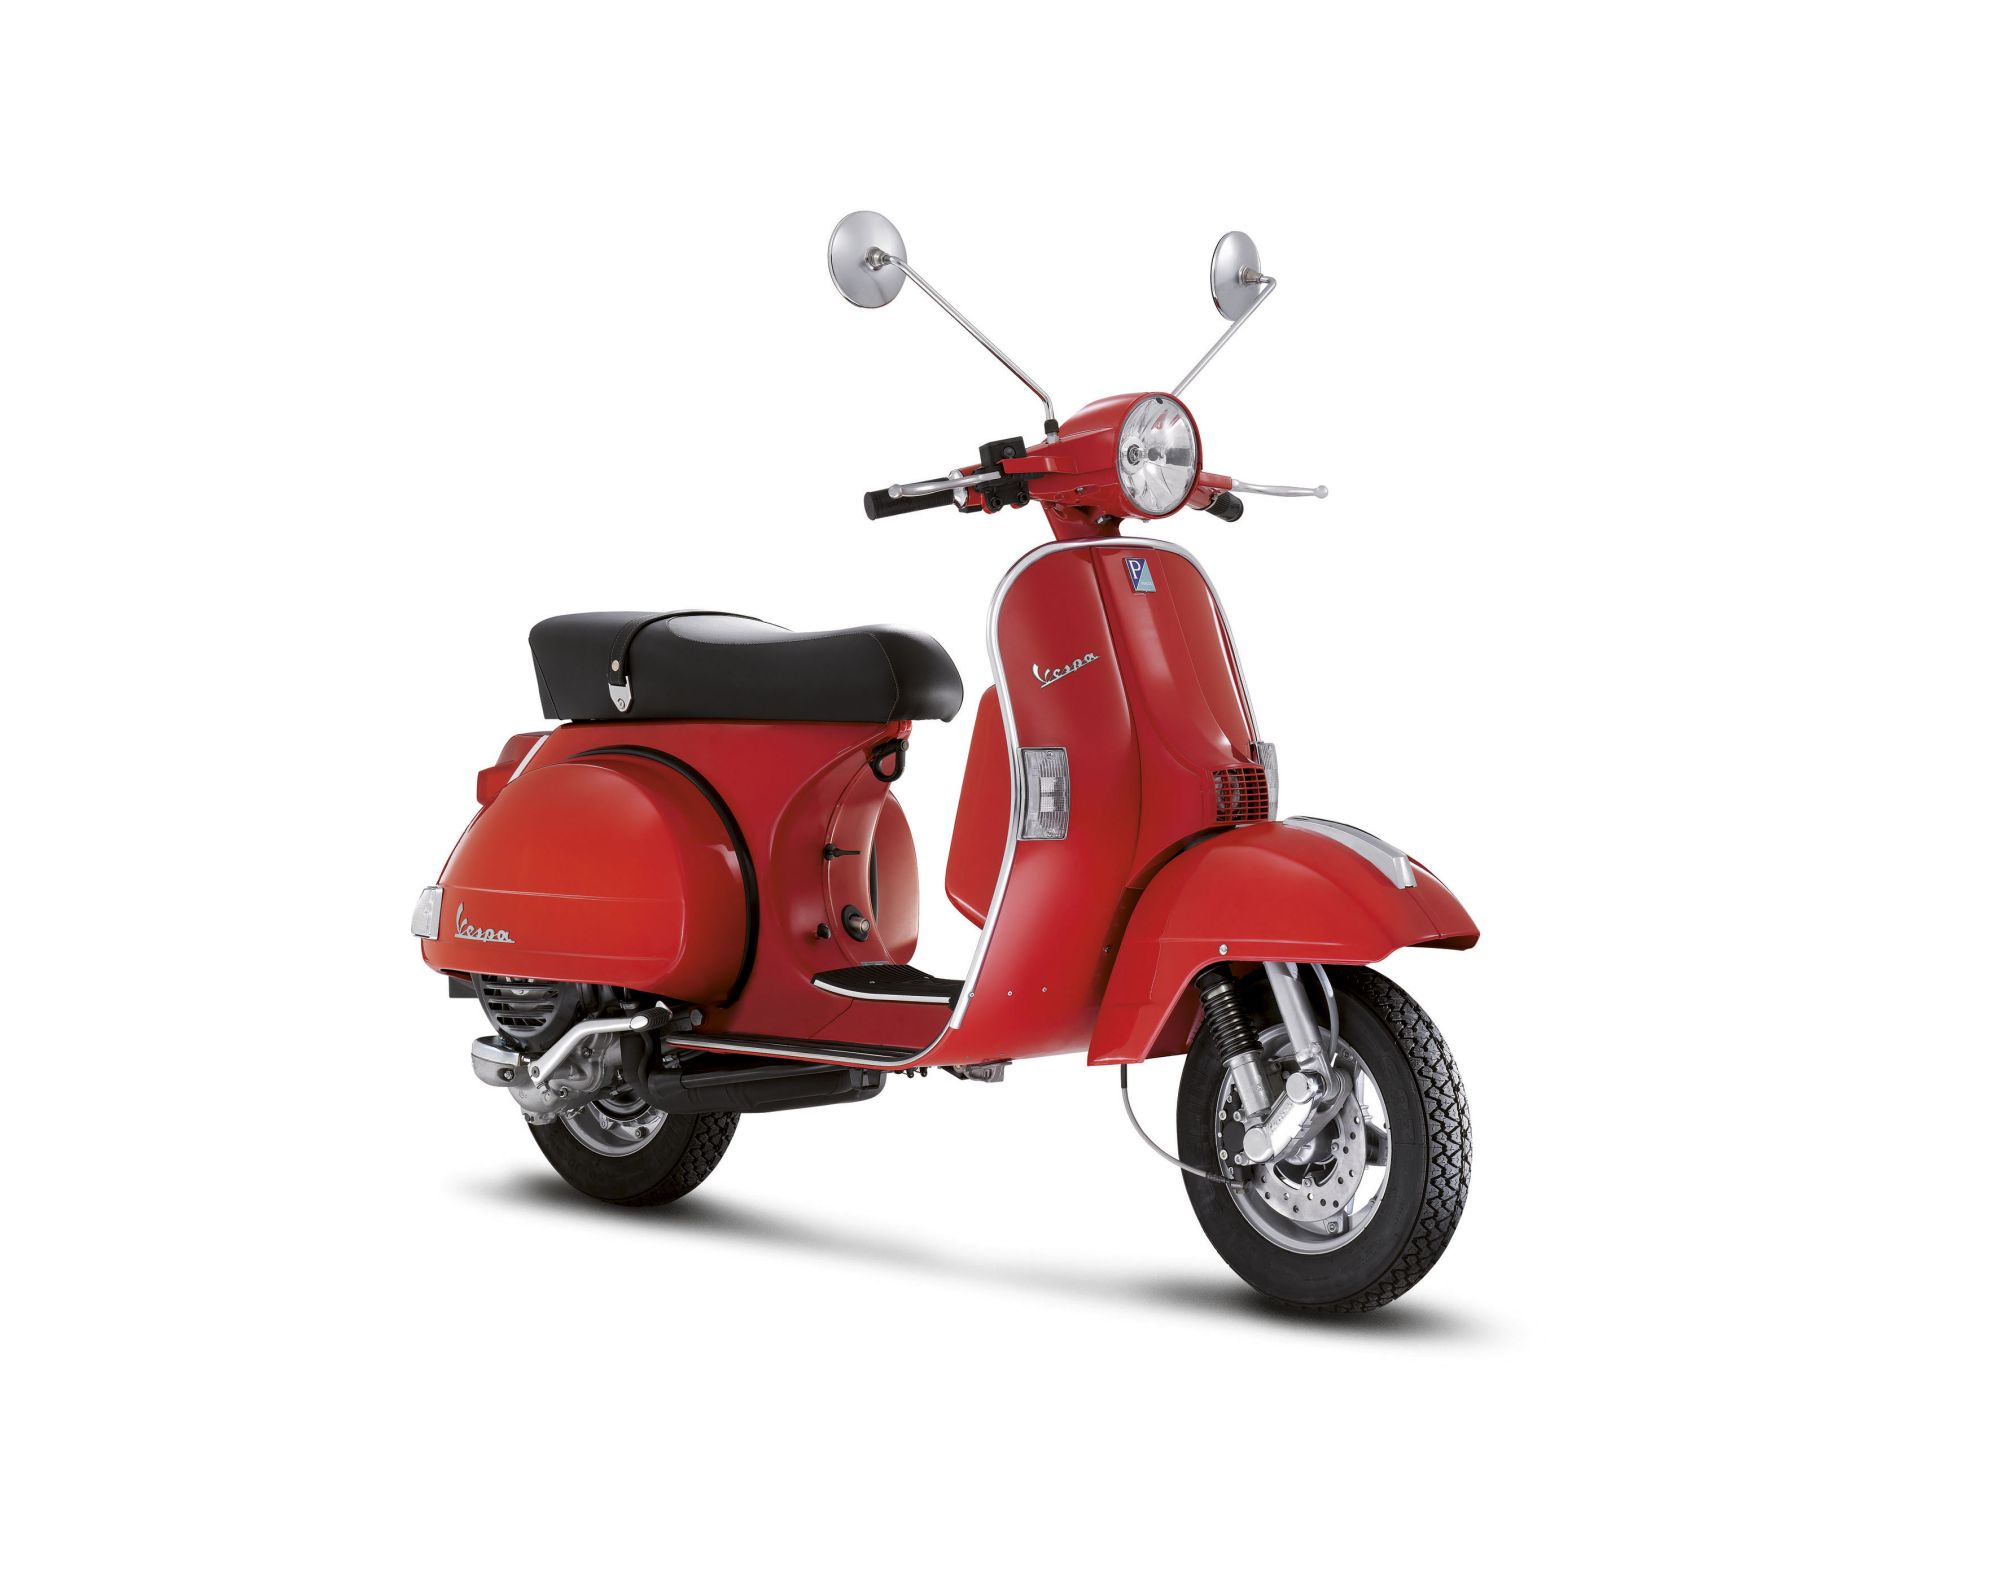 Modern Vespa : Beautiful Vespa pictures - post yours